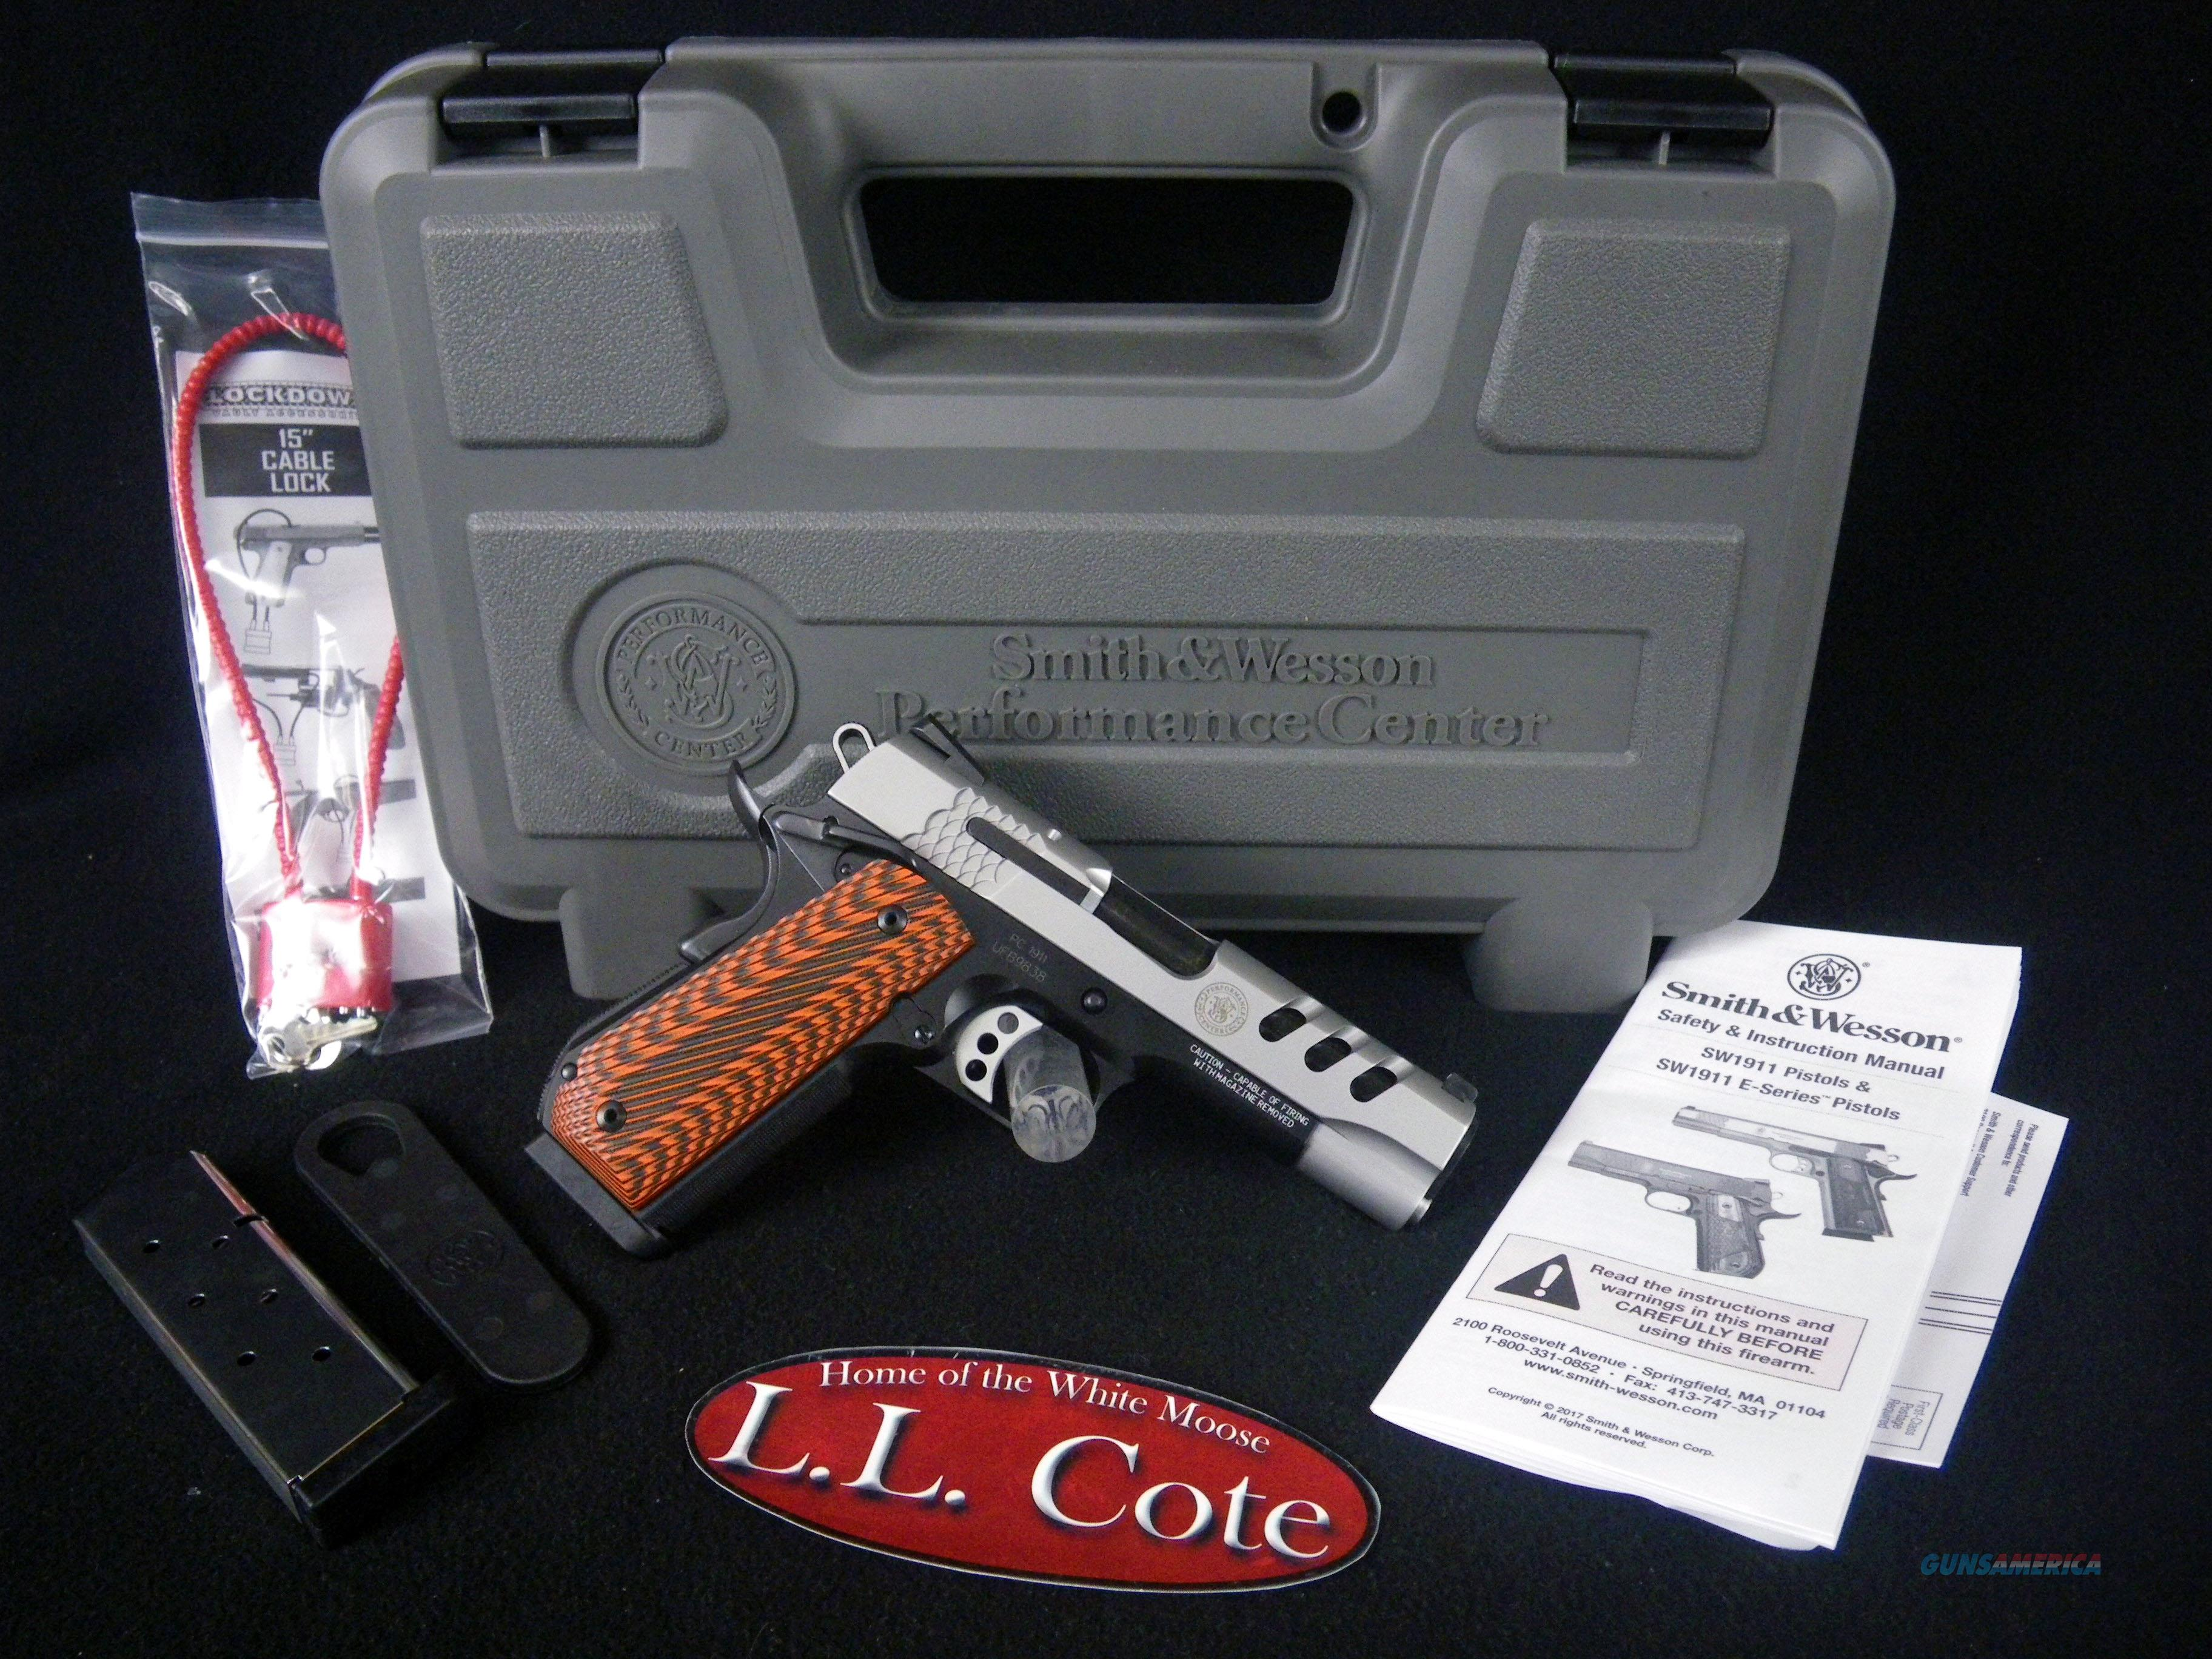 """Smith & Wesson Perf Center SW1911 45ACP 4.25"""" NEW 170344  Guns > Pistols > Smith & Wesson Pistols - Autos > Polymer Frame"""